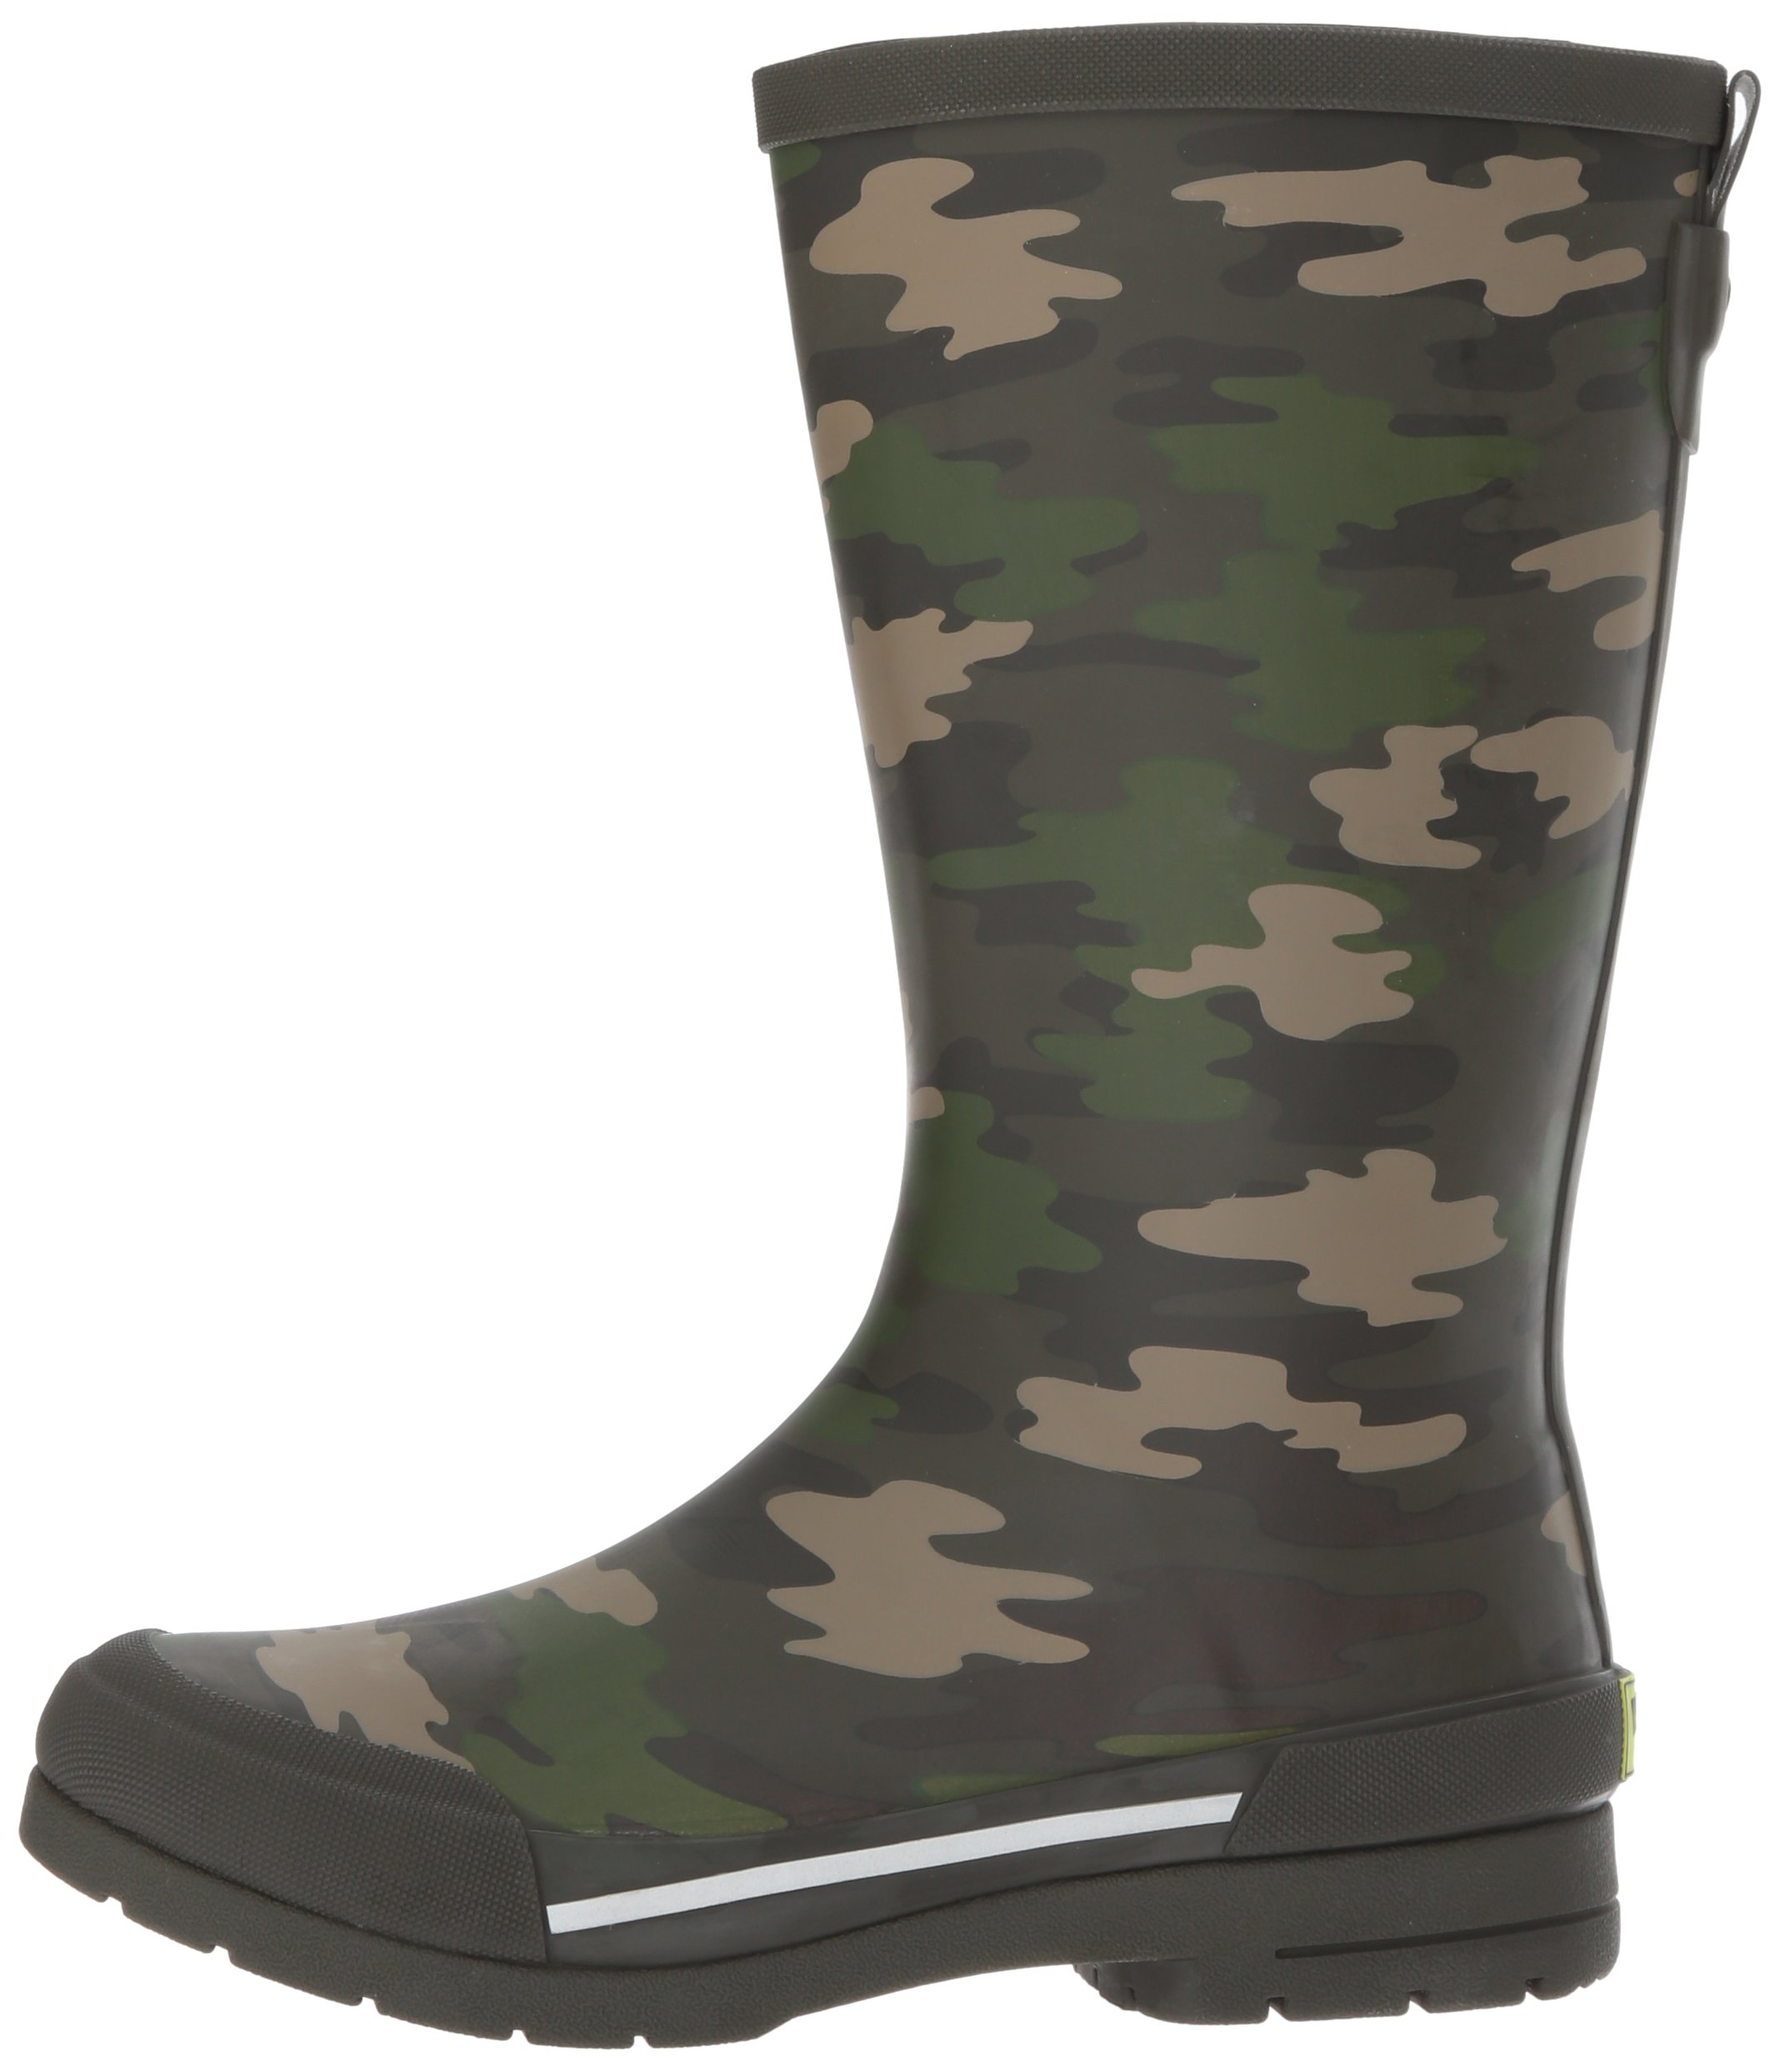 Western Chief Boys Waterproof Classic Youth size Rain Boots, Camo Green, 13 M US Little Kid by Western Chief (Image #5)